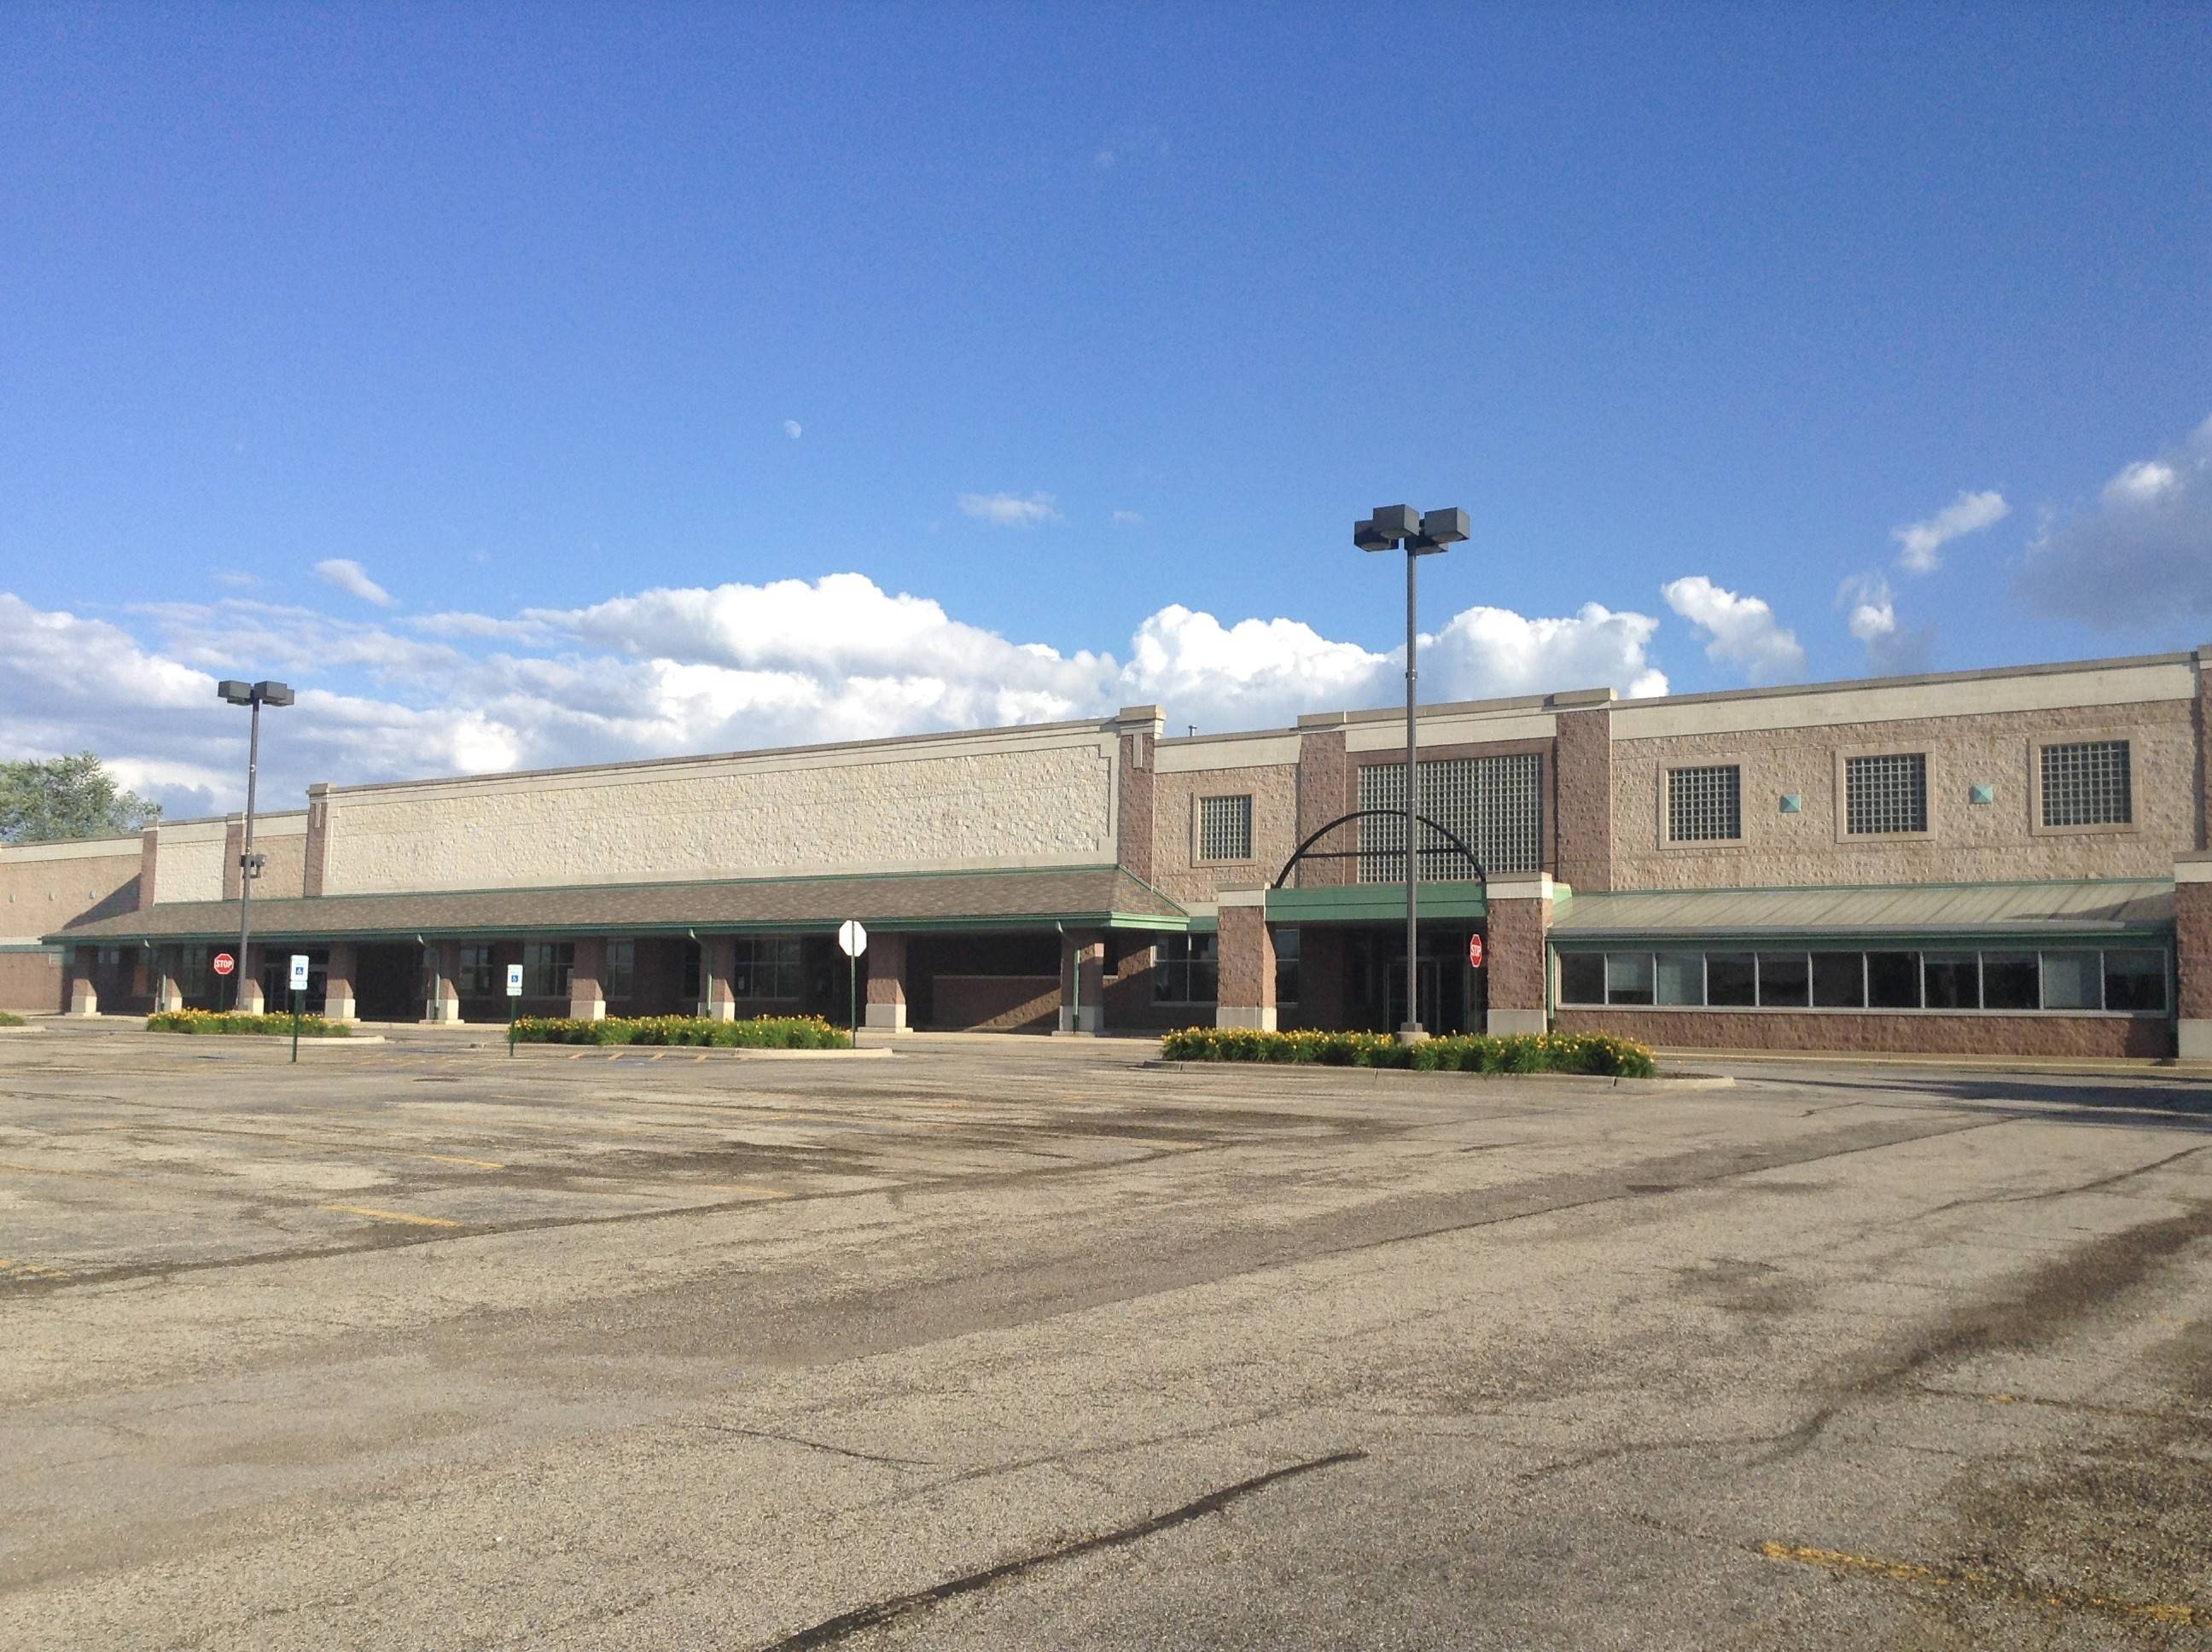 Storage business proposed for Dominick's site in Wauconda